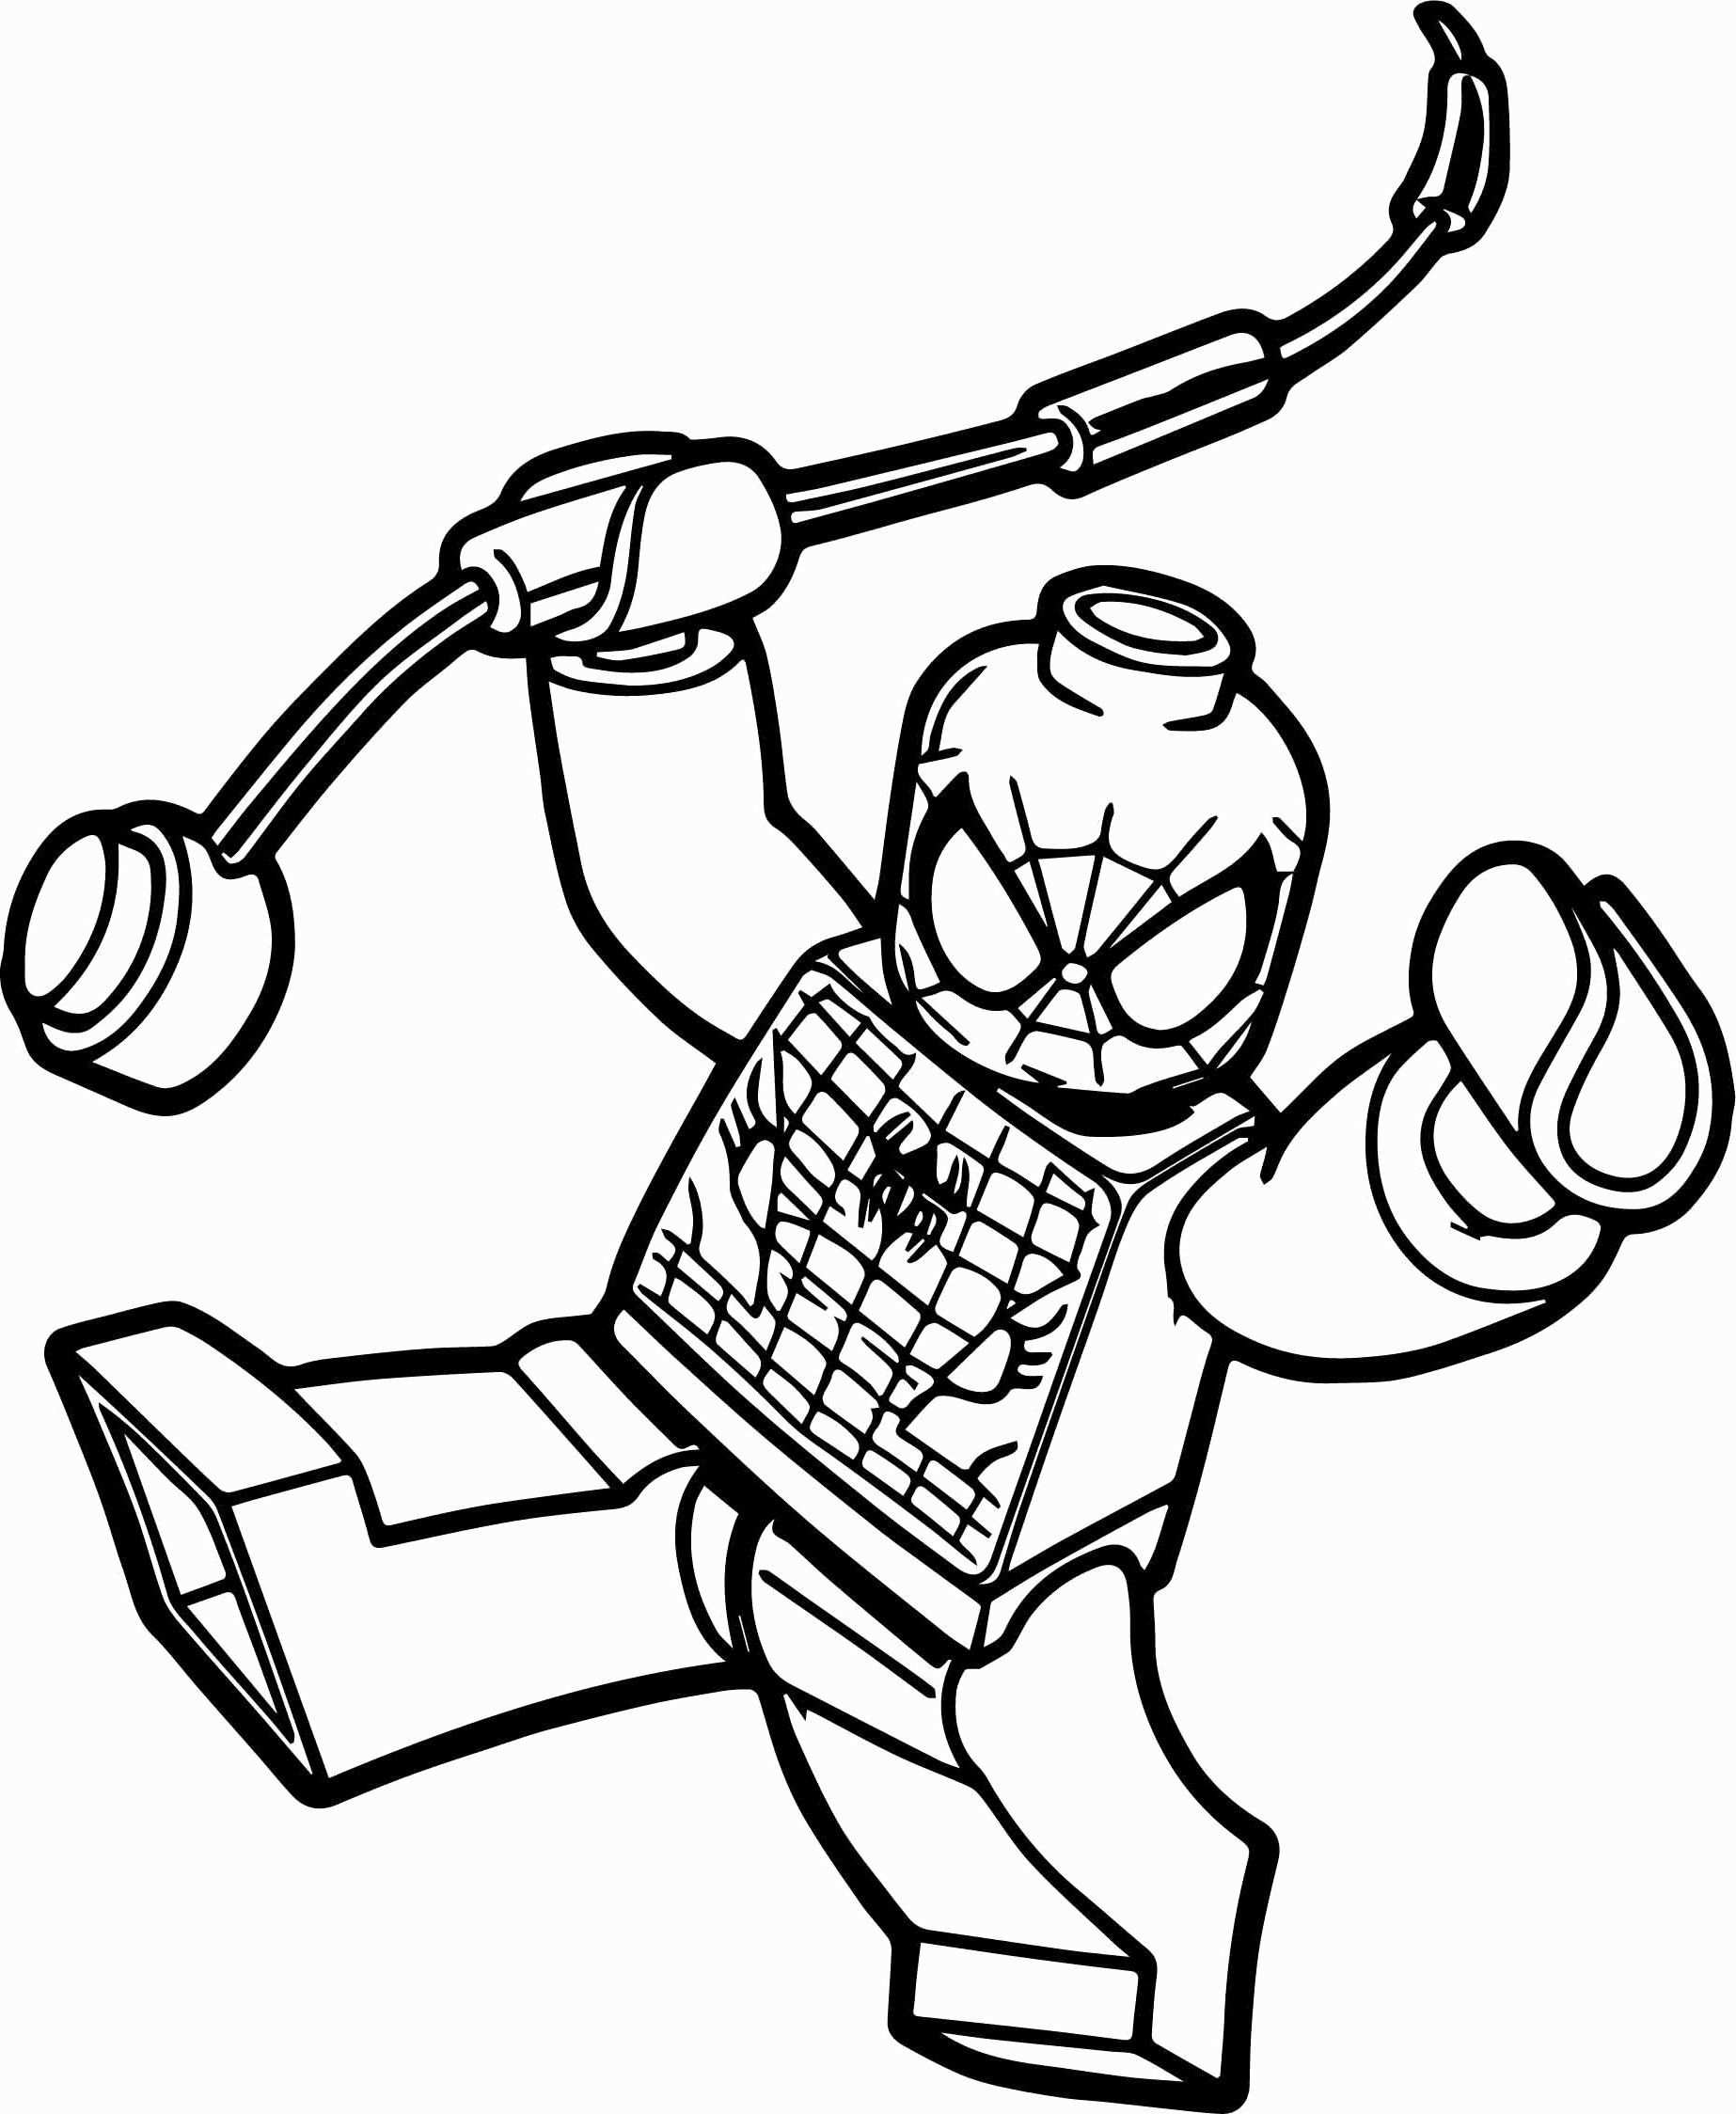 28 Lego Spiderman Coloring Page In 2020 Spiderman Coloring